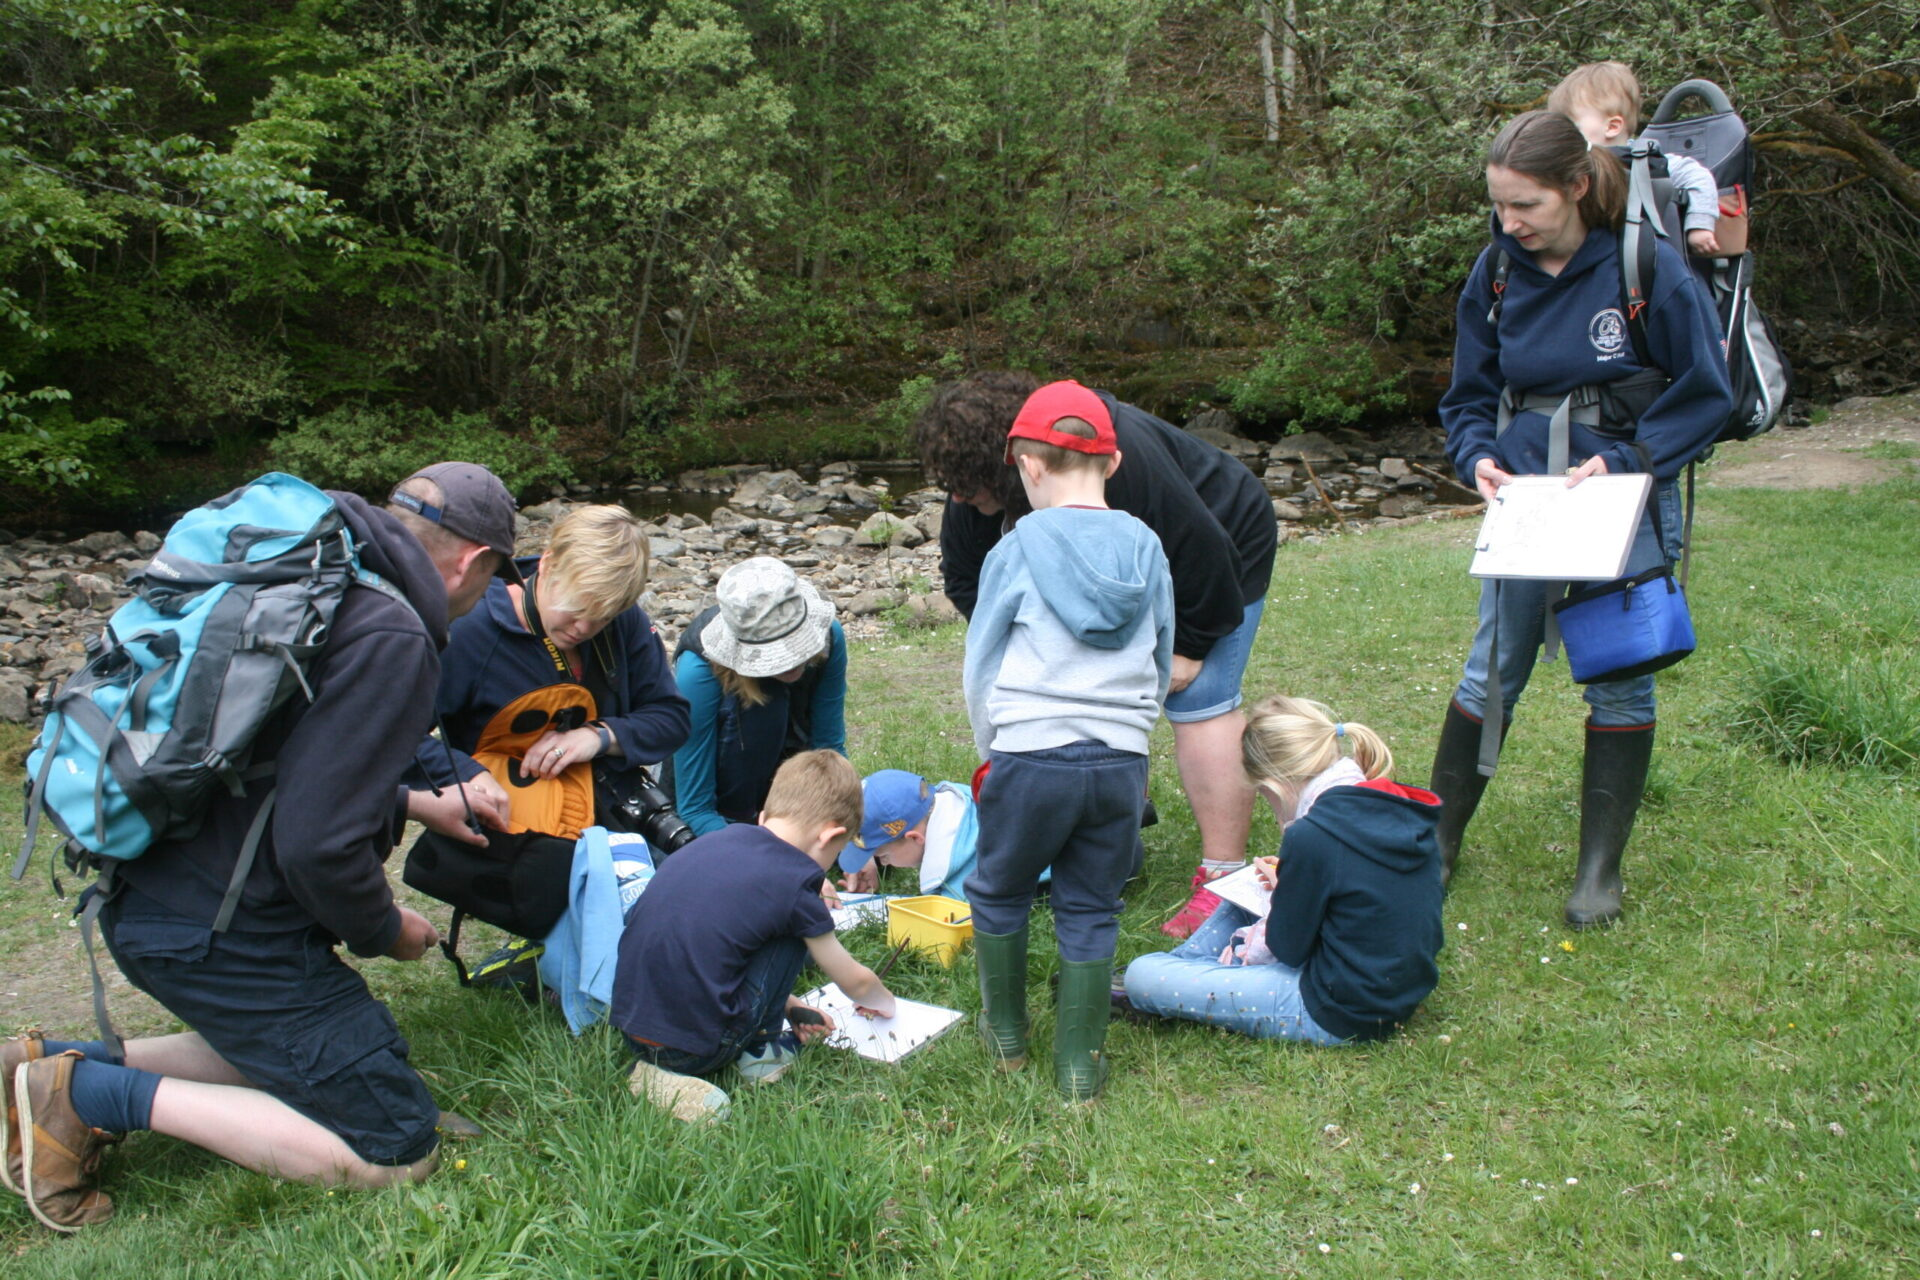 Image of group of adults and children working on a project in a field